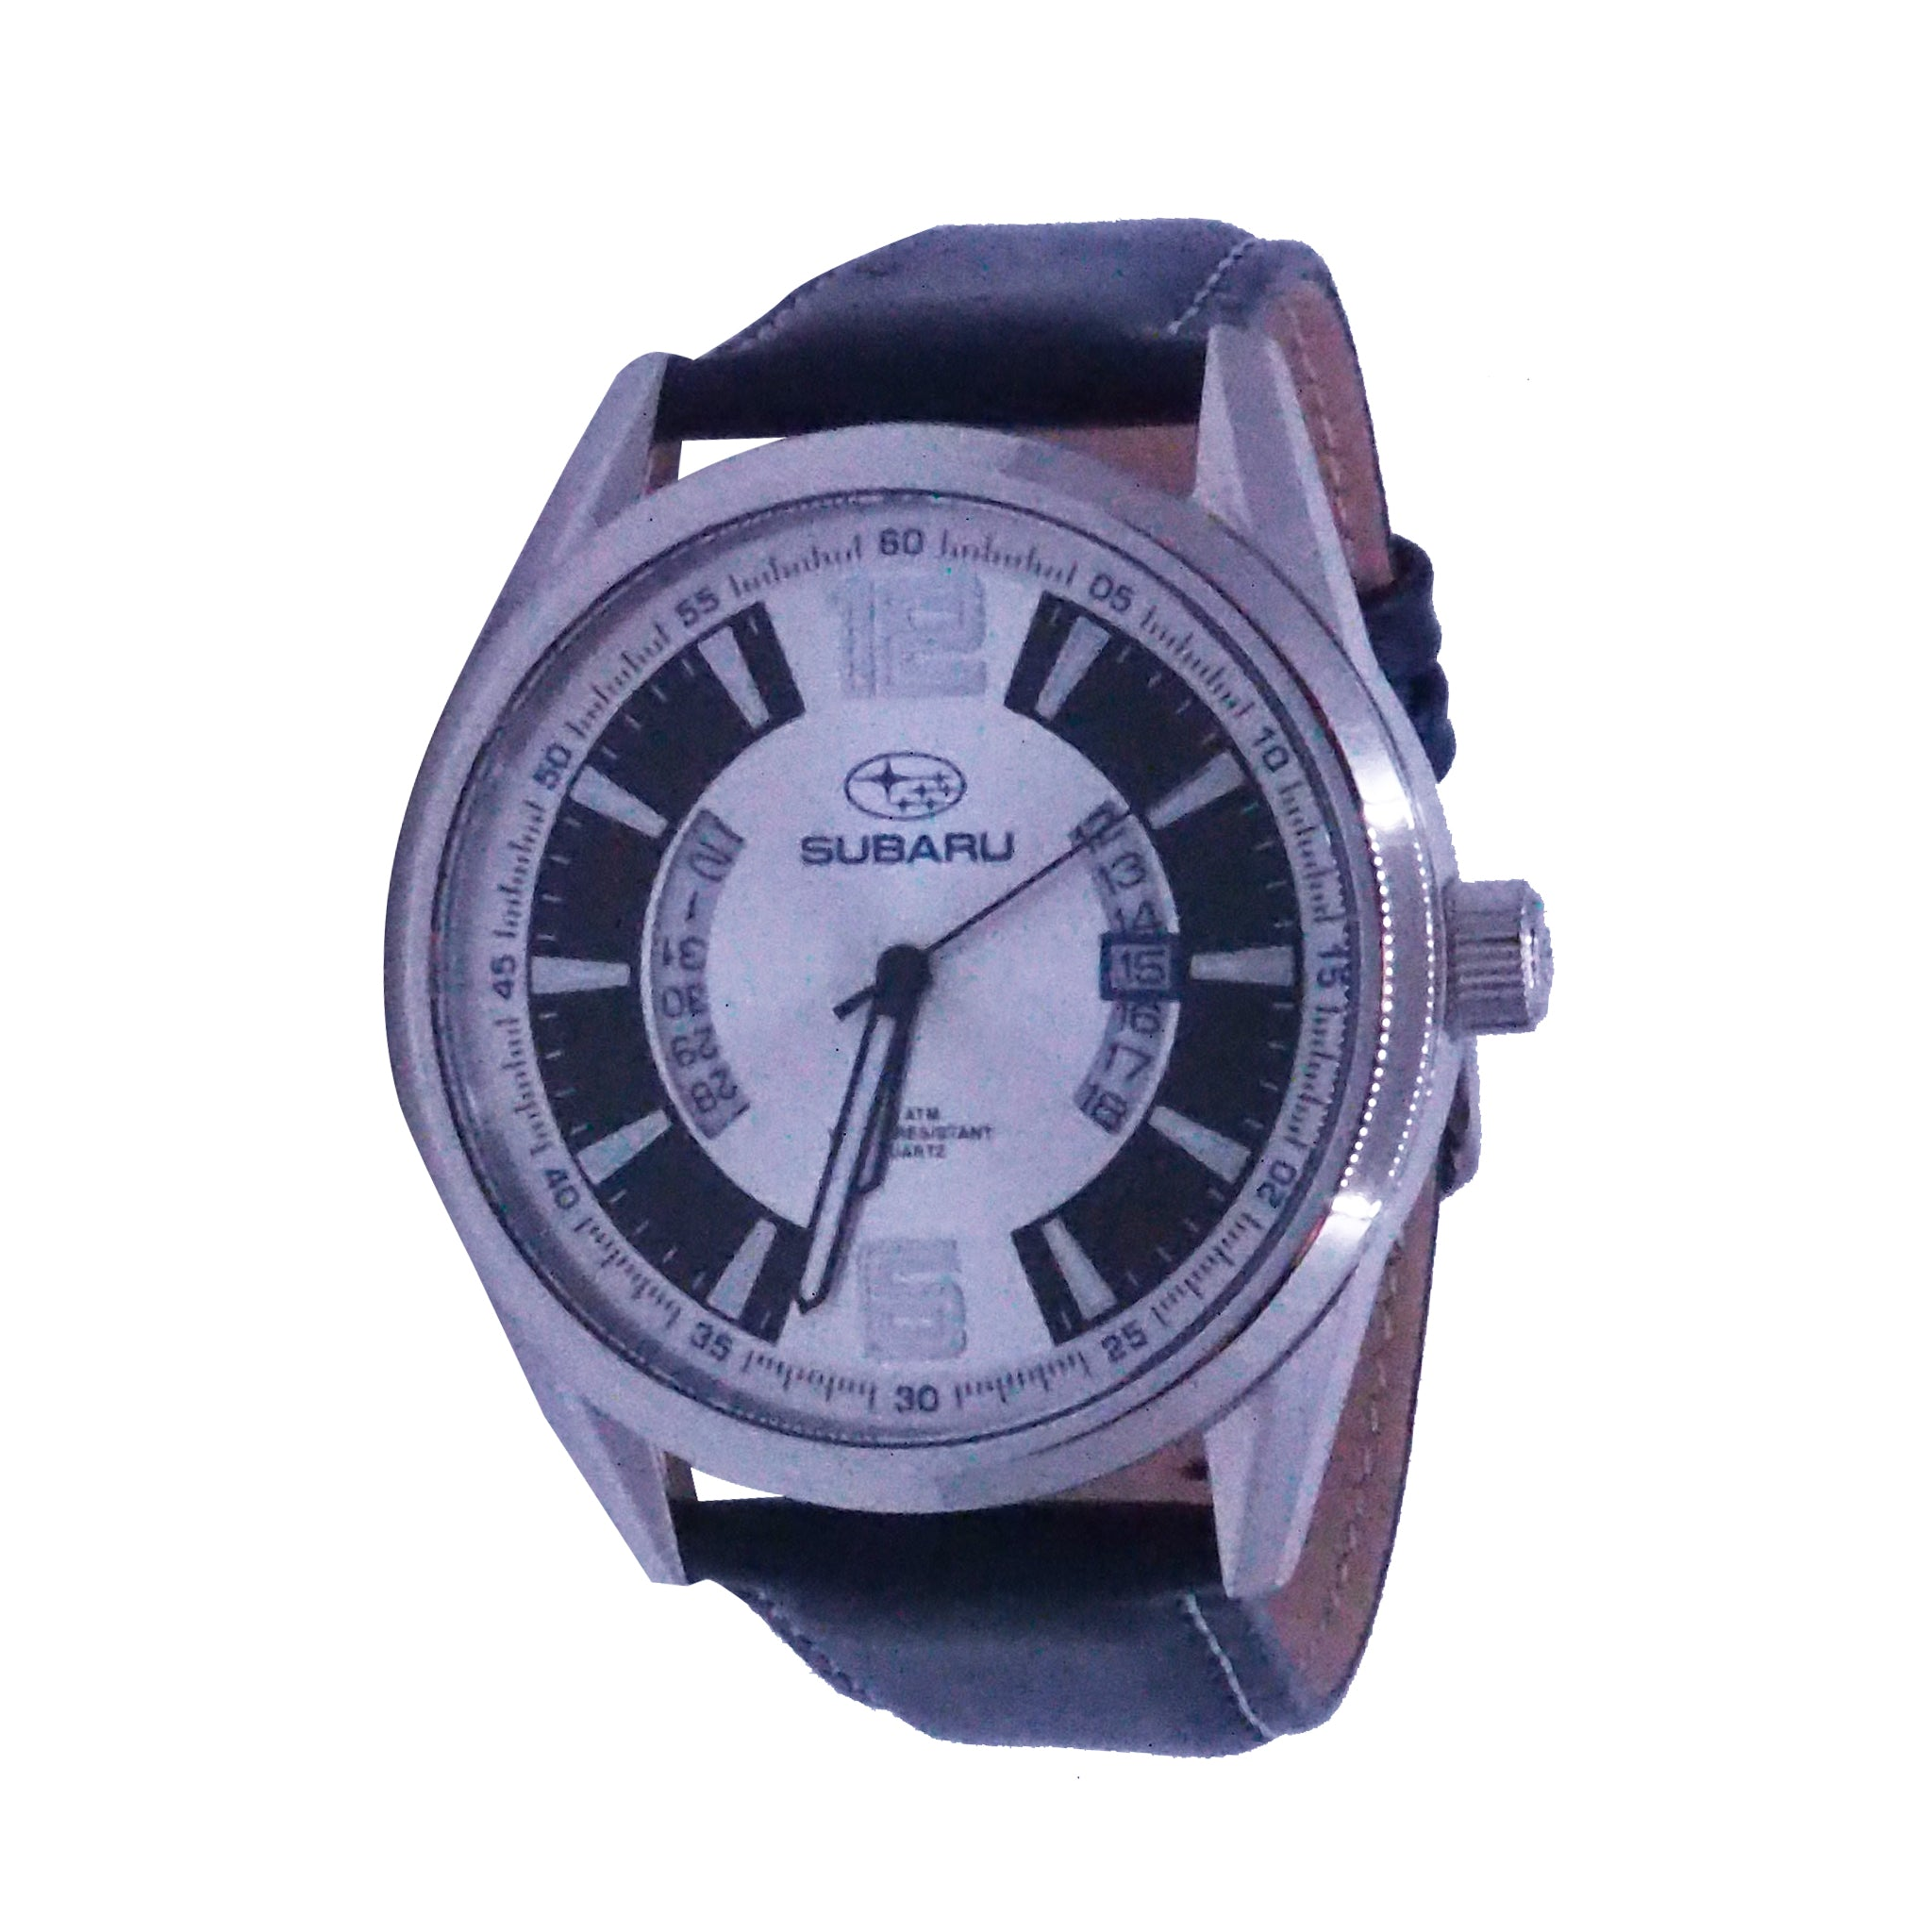 Subaru Blue Leather Strap Watch